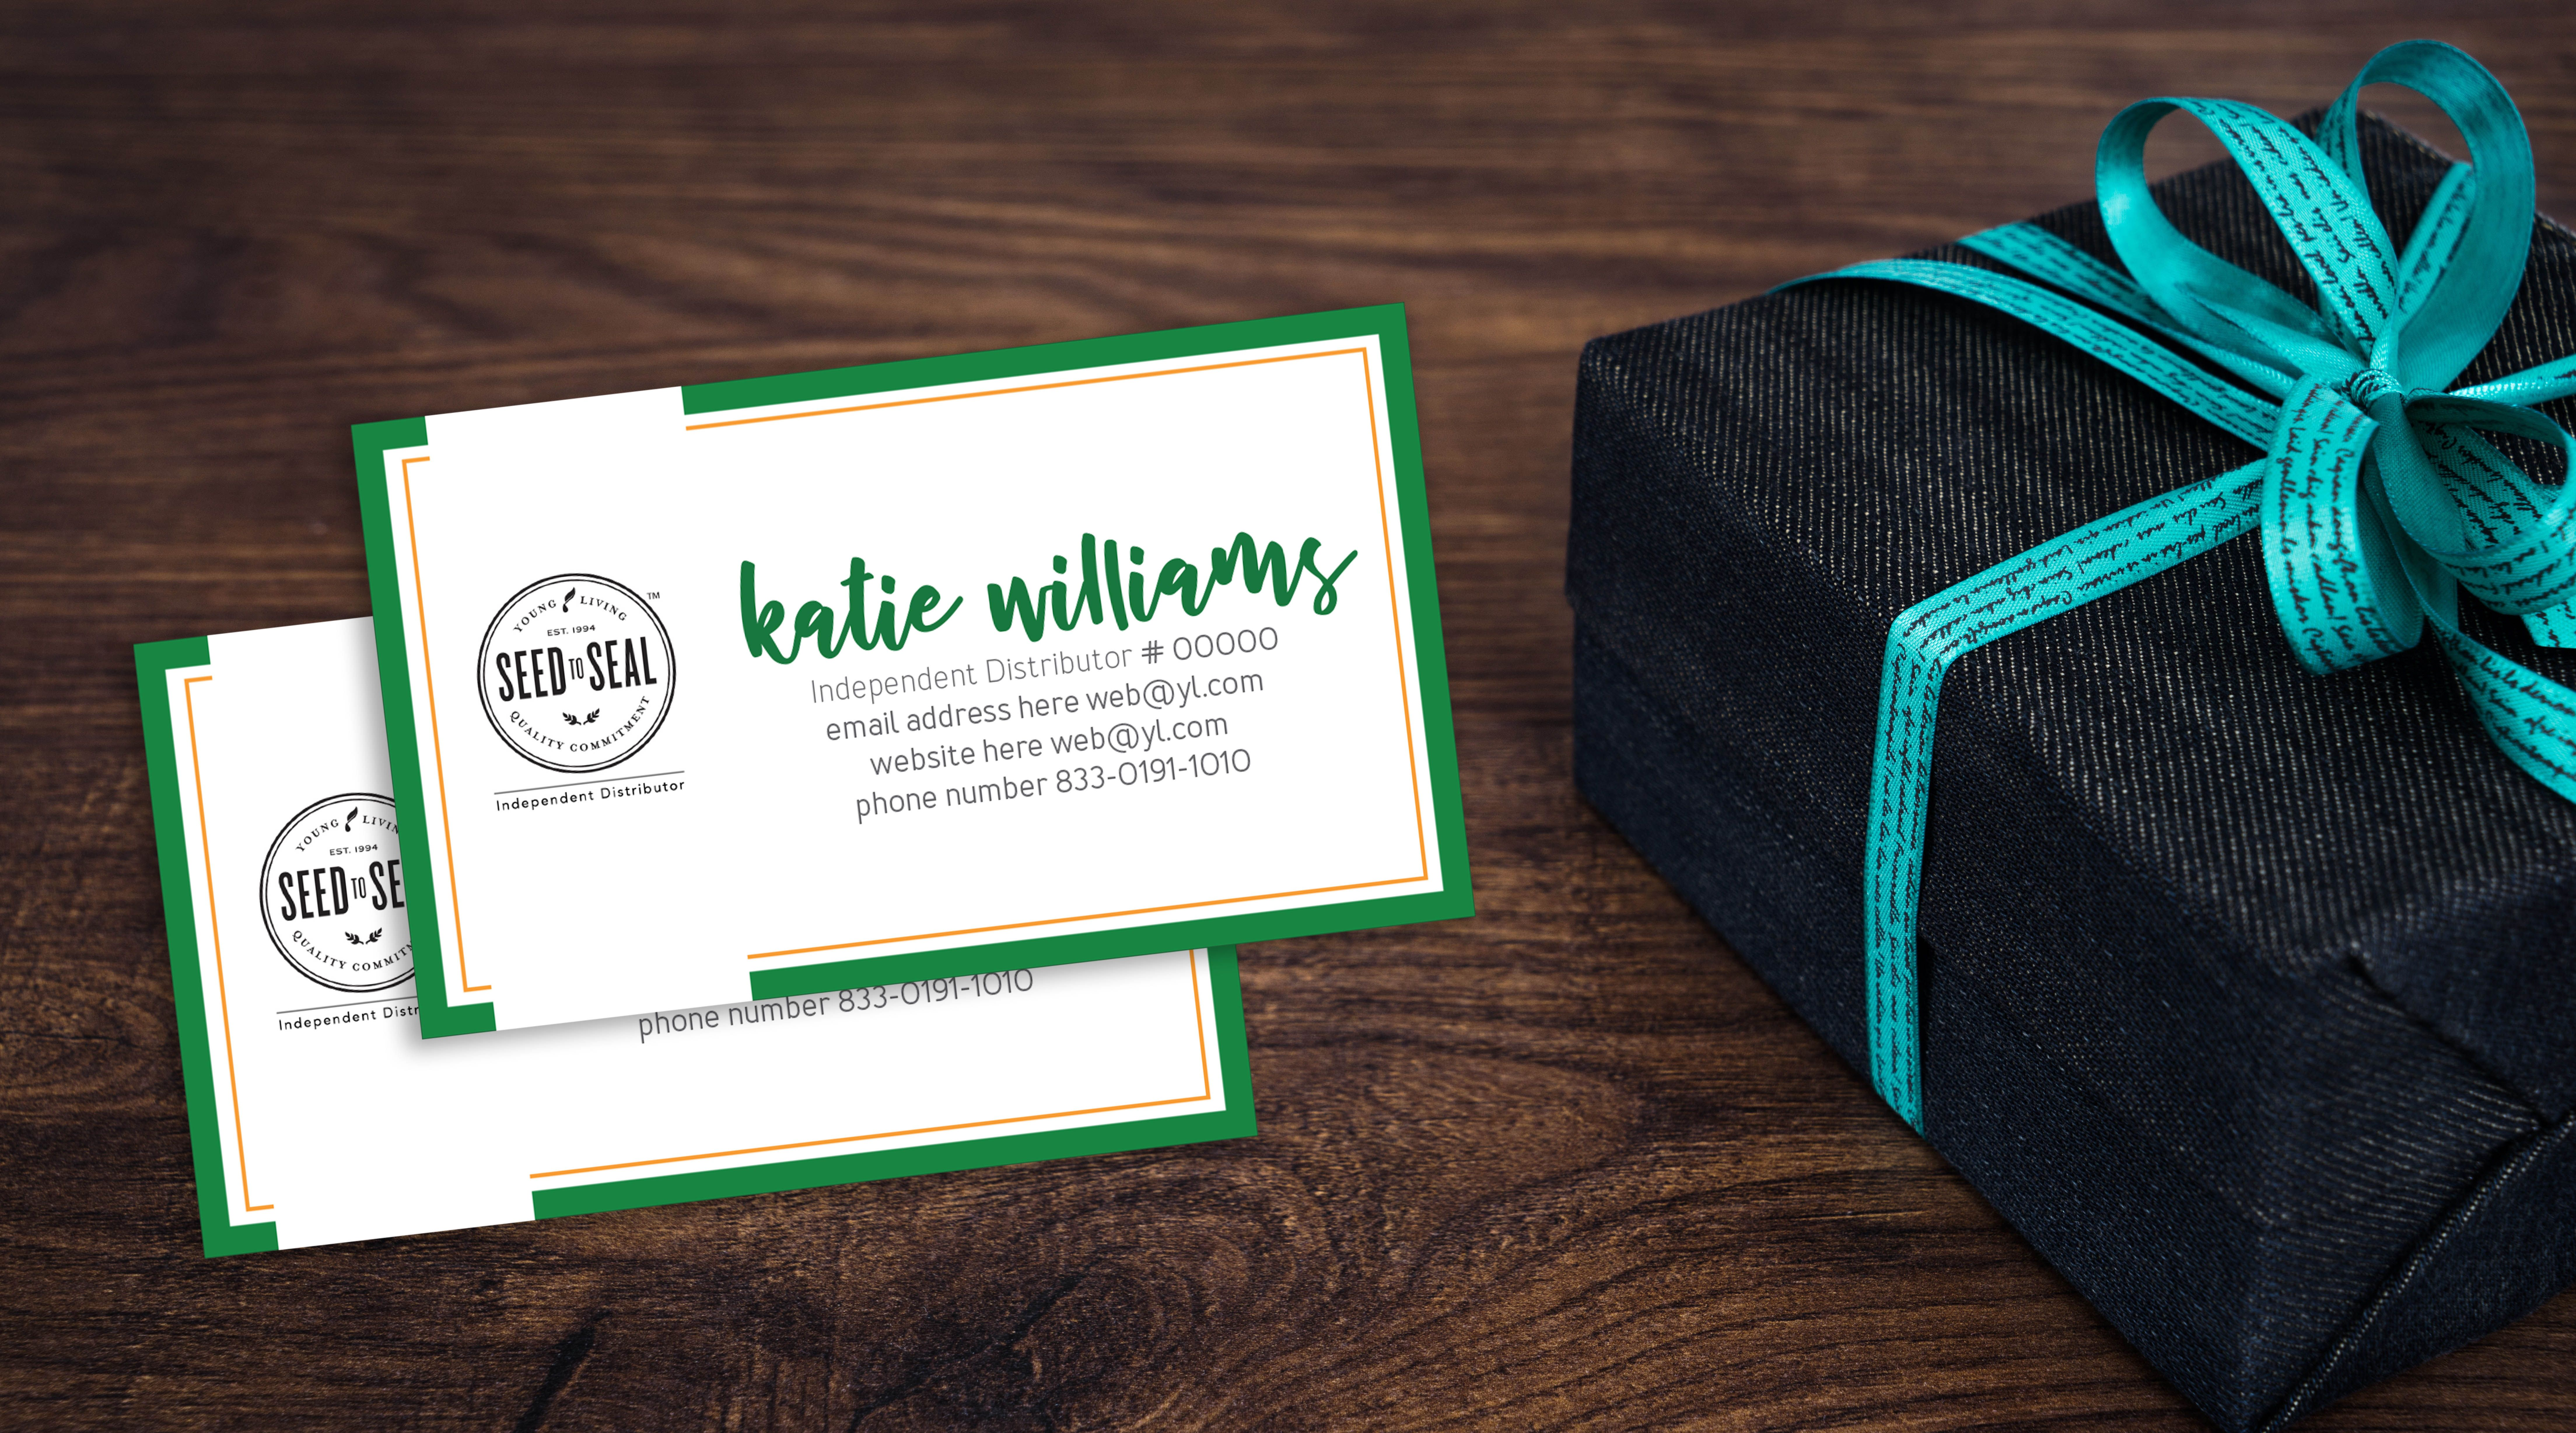 Mlm young living business card options women social mlm young living business card options colourmoves Gallery